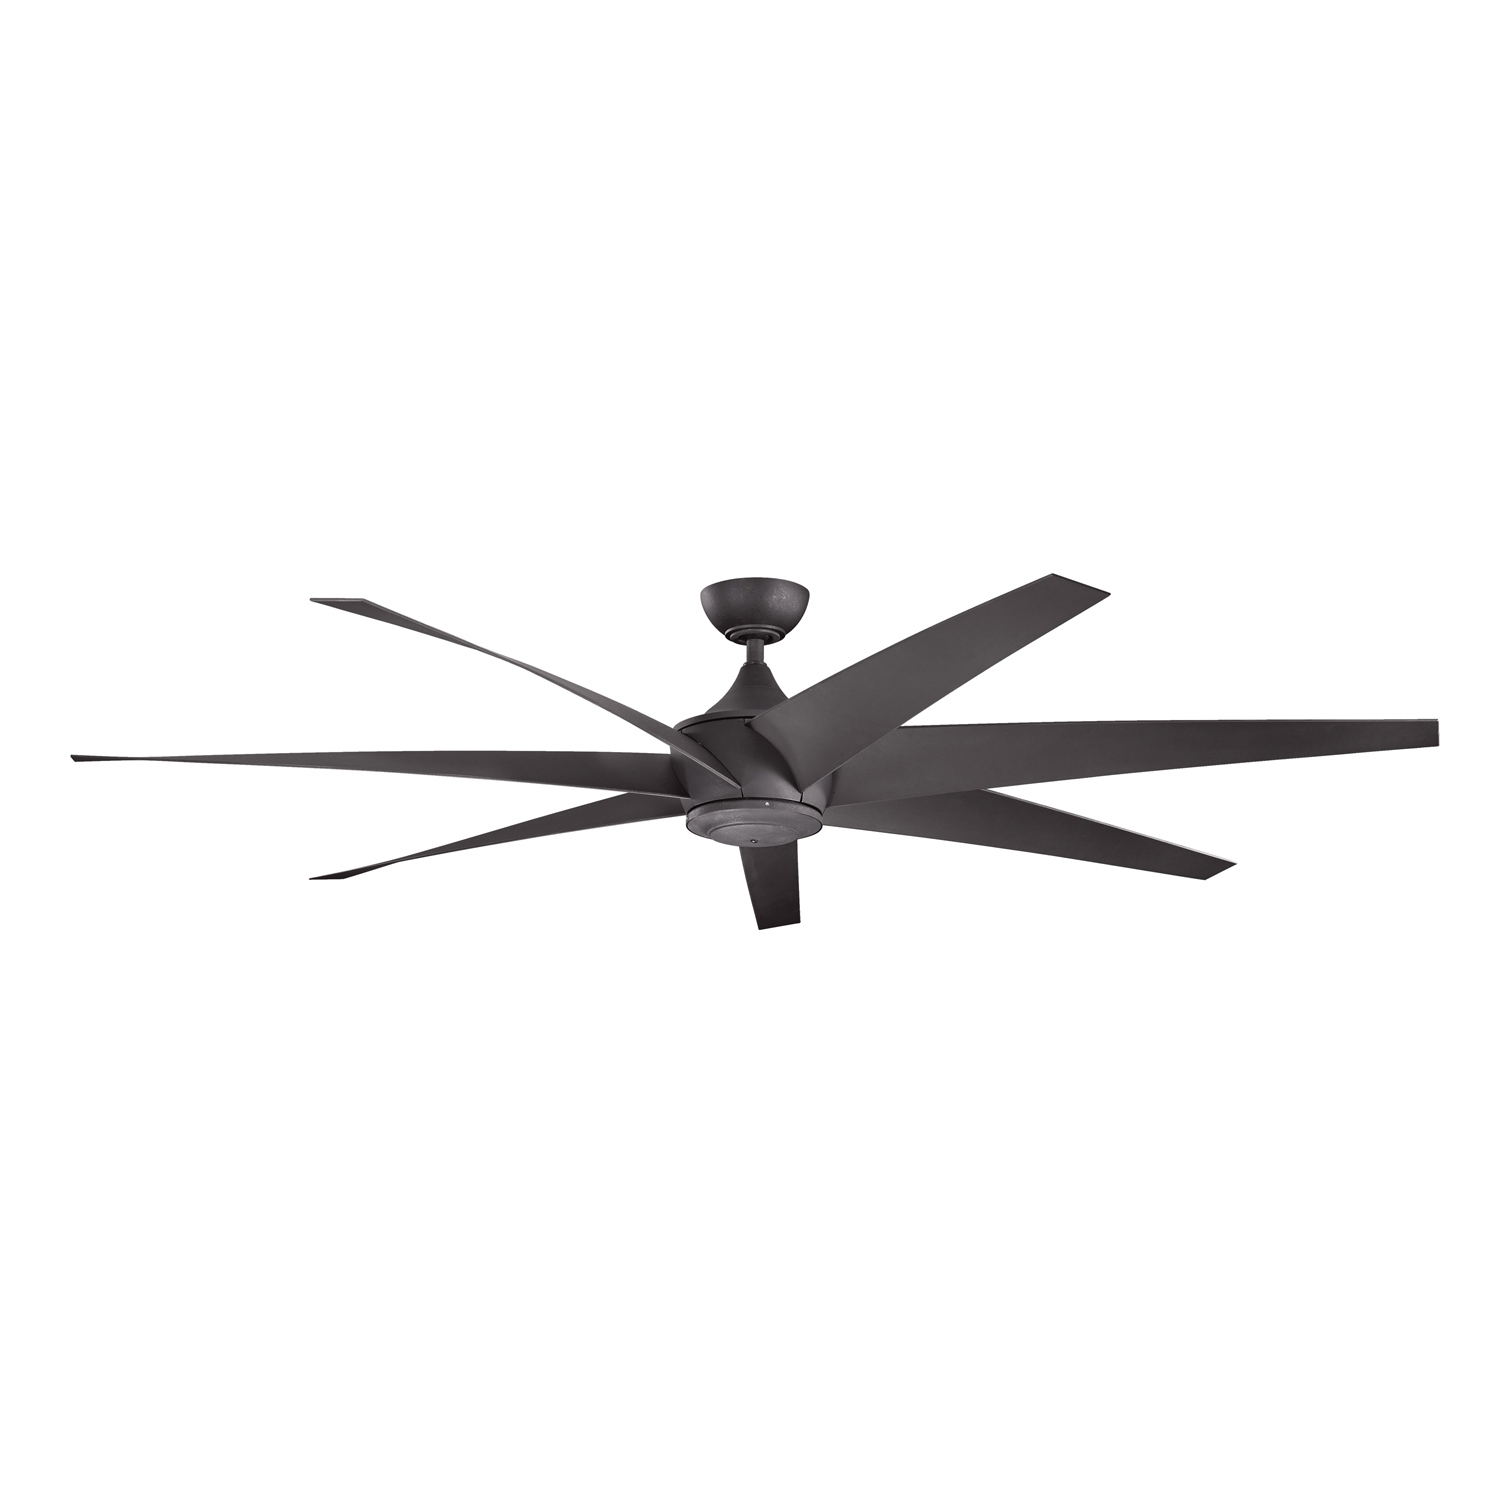 80 inchCeiling Fan from the Lehr collection by Kichler 310115DBK